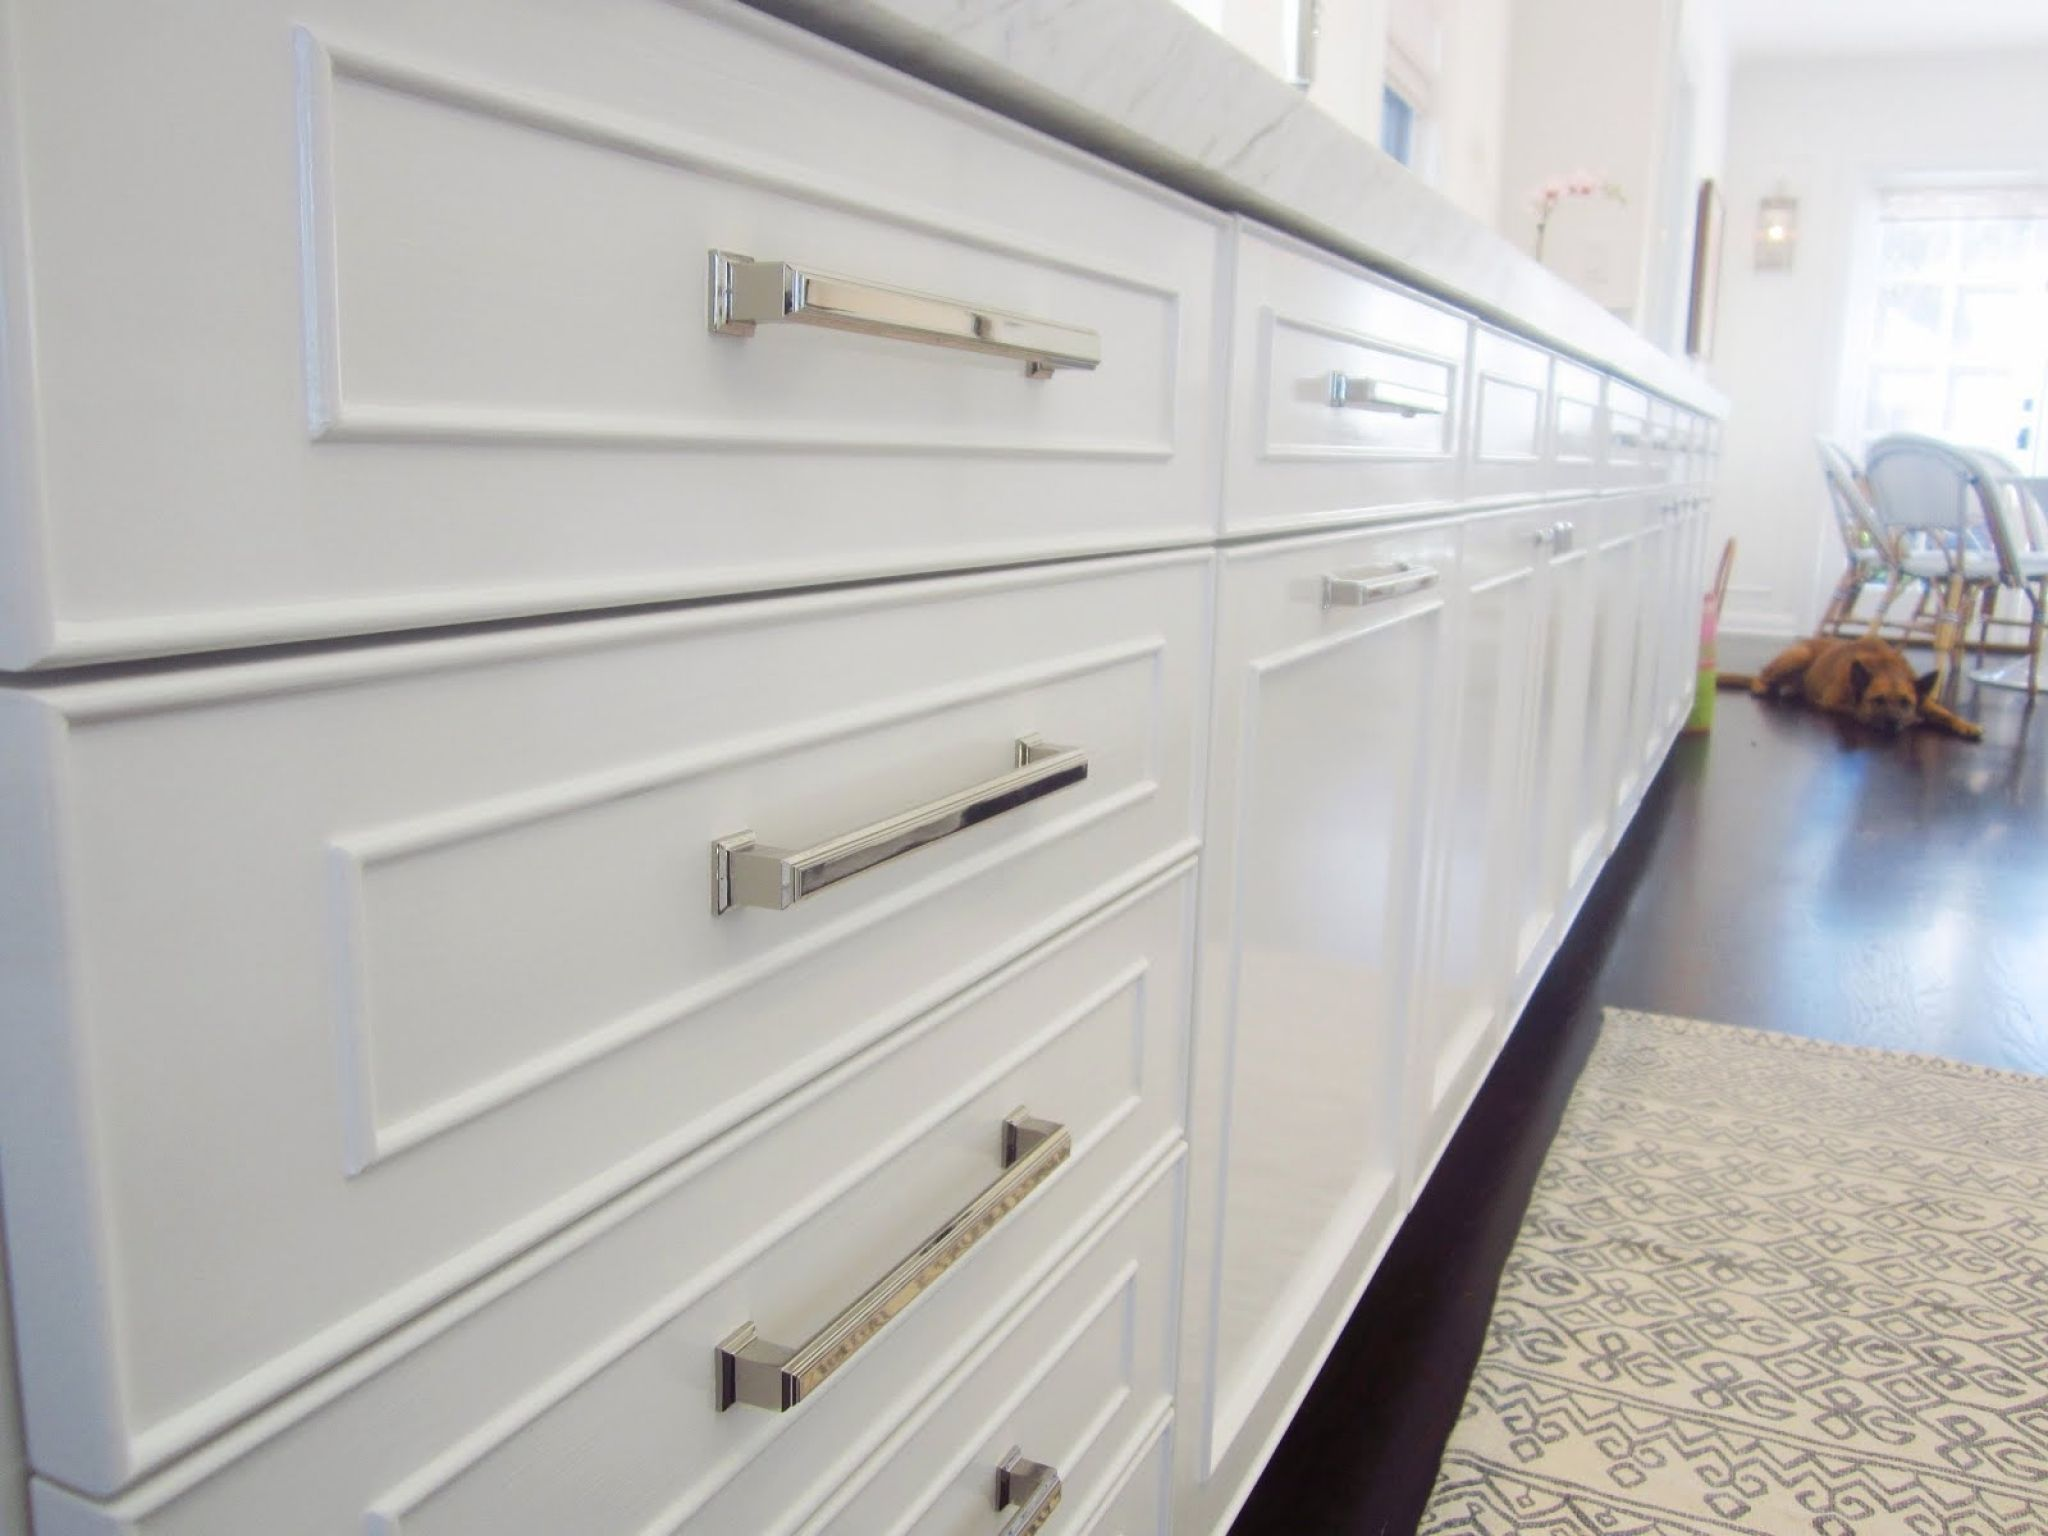 Contemporary Handles For Kitchen Cabinets  Kitchen Counter Top New Kitchen Cabinet Drawer Pulls Inspiration